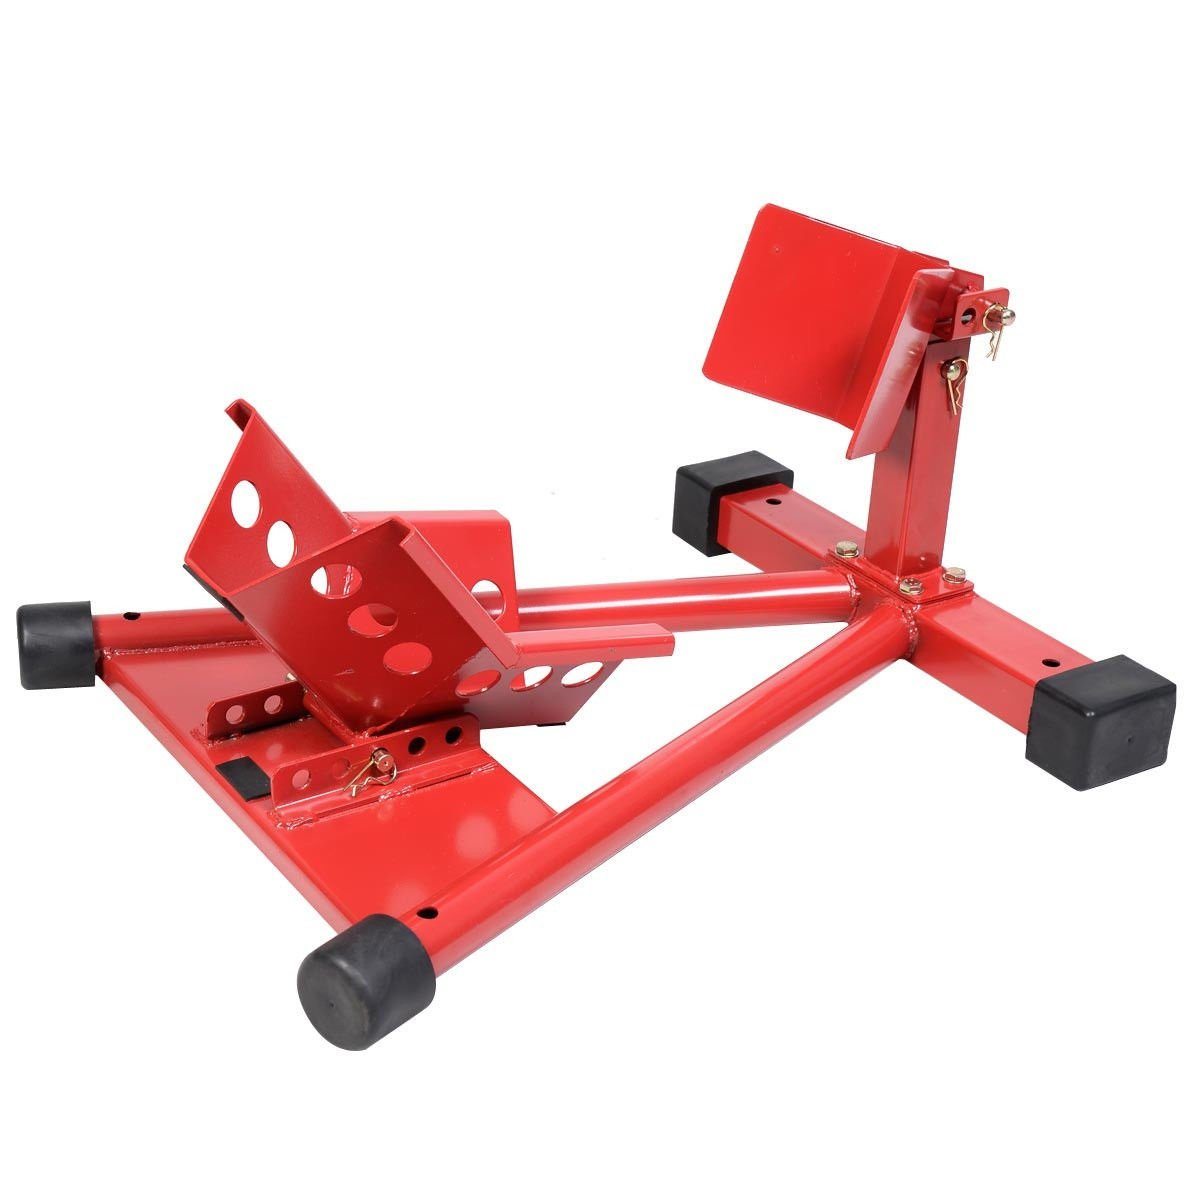 1500LB Motorcycle Transporting Wheel Chock Stand Security by FDInspiration